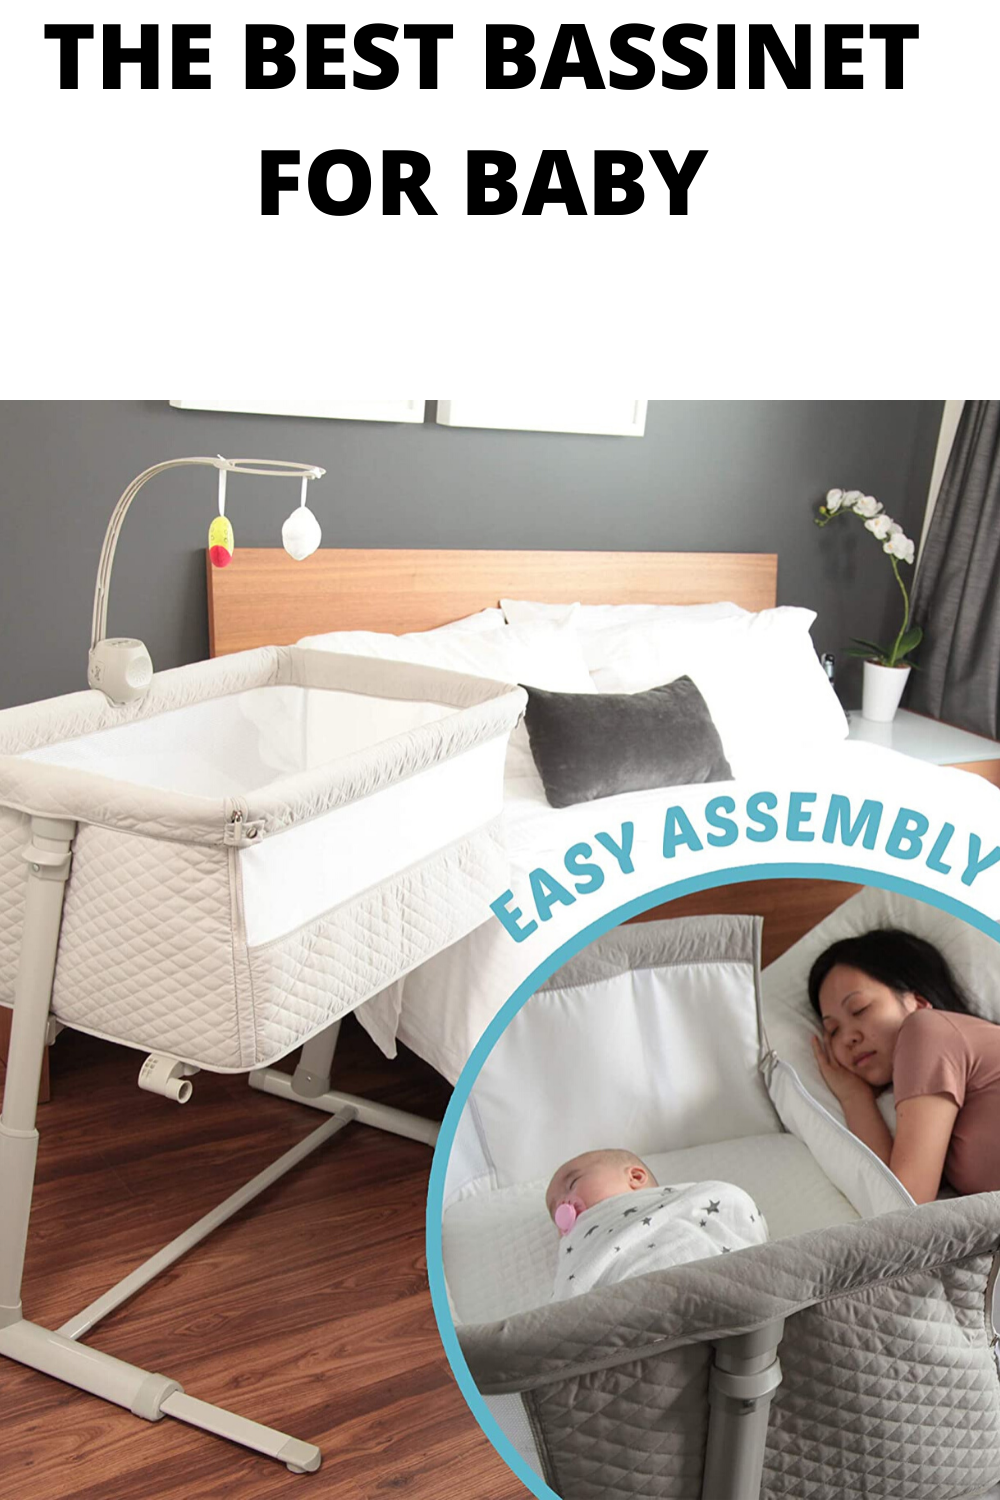 Baby Bassinets Adjustable And Easy To Assemble Bassinet For Baby In 2020 Best Bassinet Bassinet Baby Bedside Sleeper